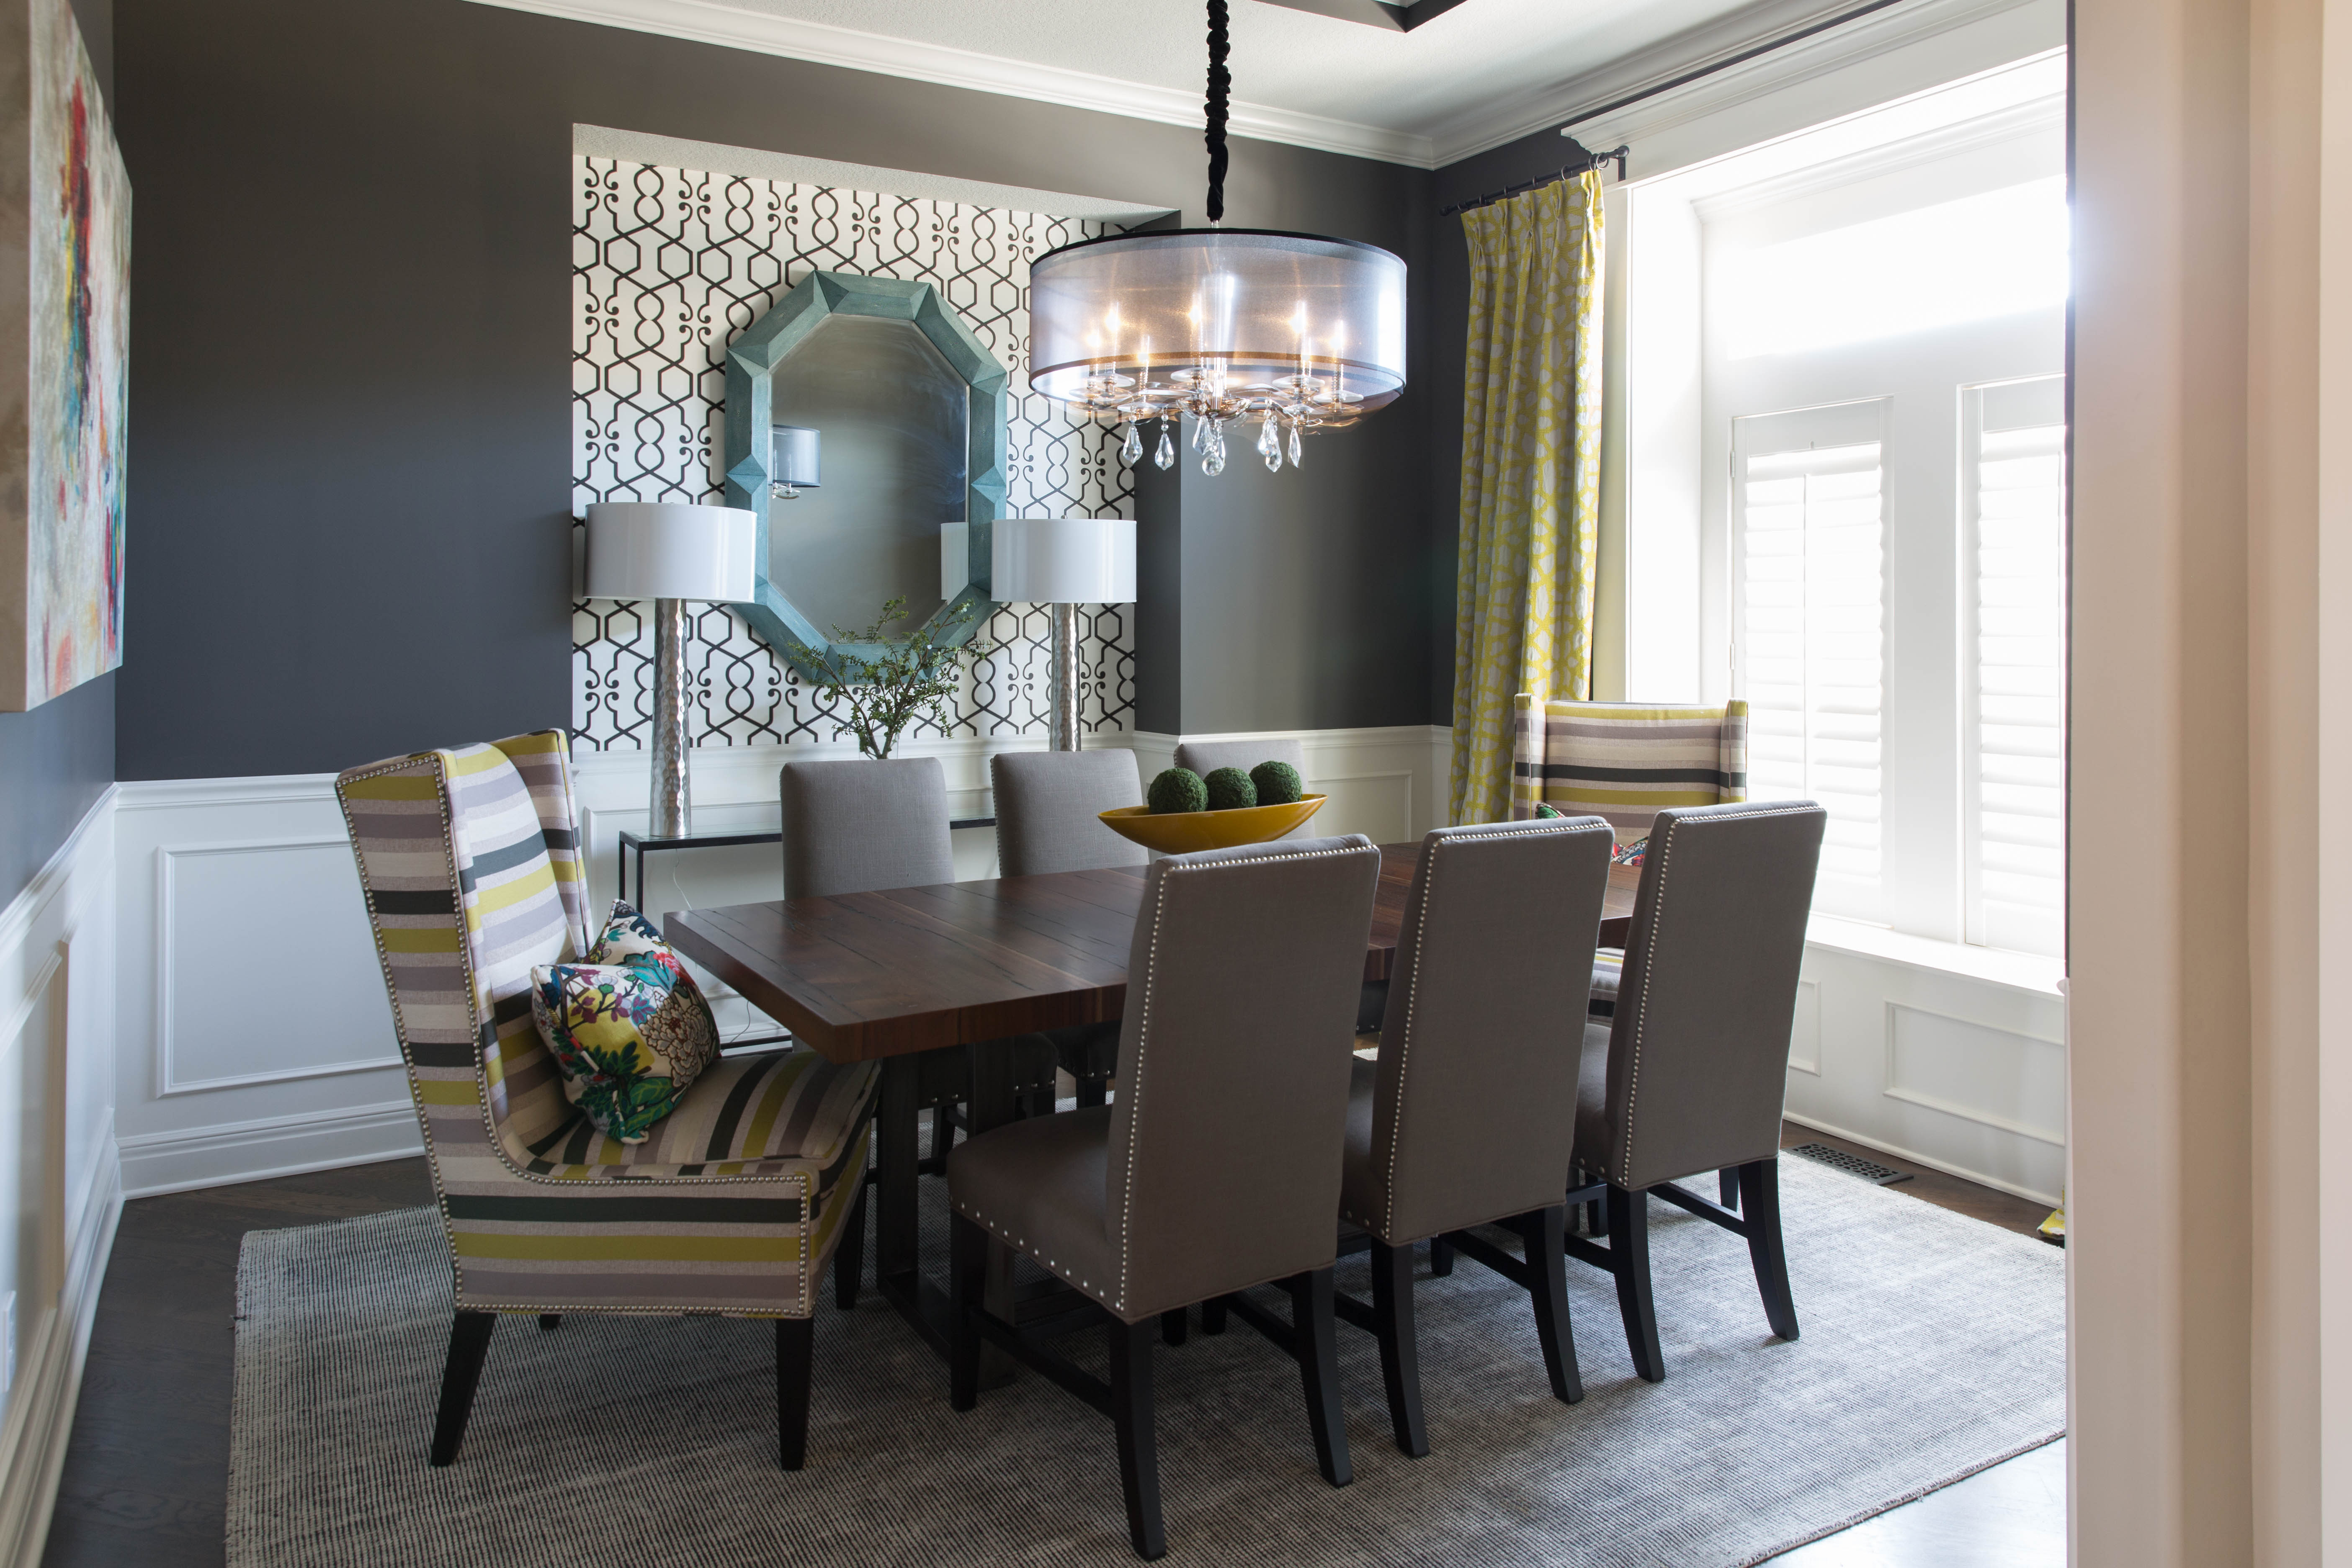 Home - Kansas City Interior Design Firm - Come Home to Nest - Nest ...